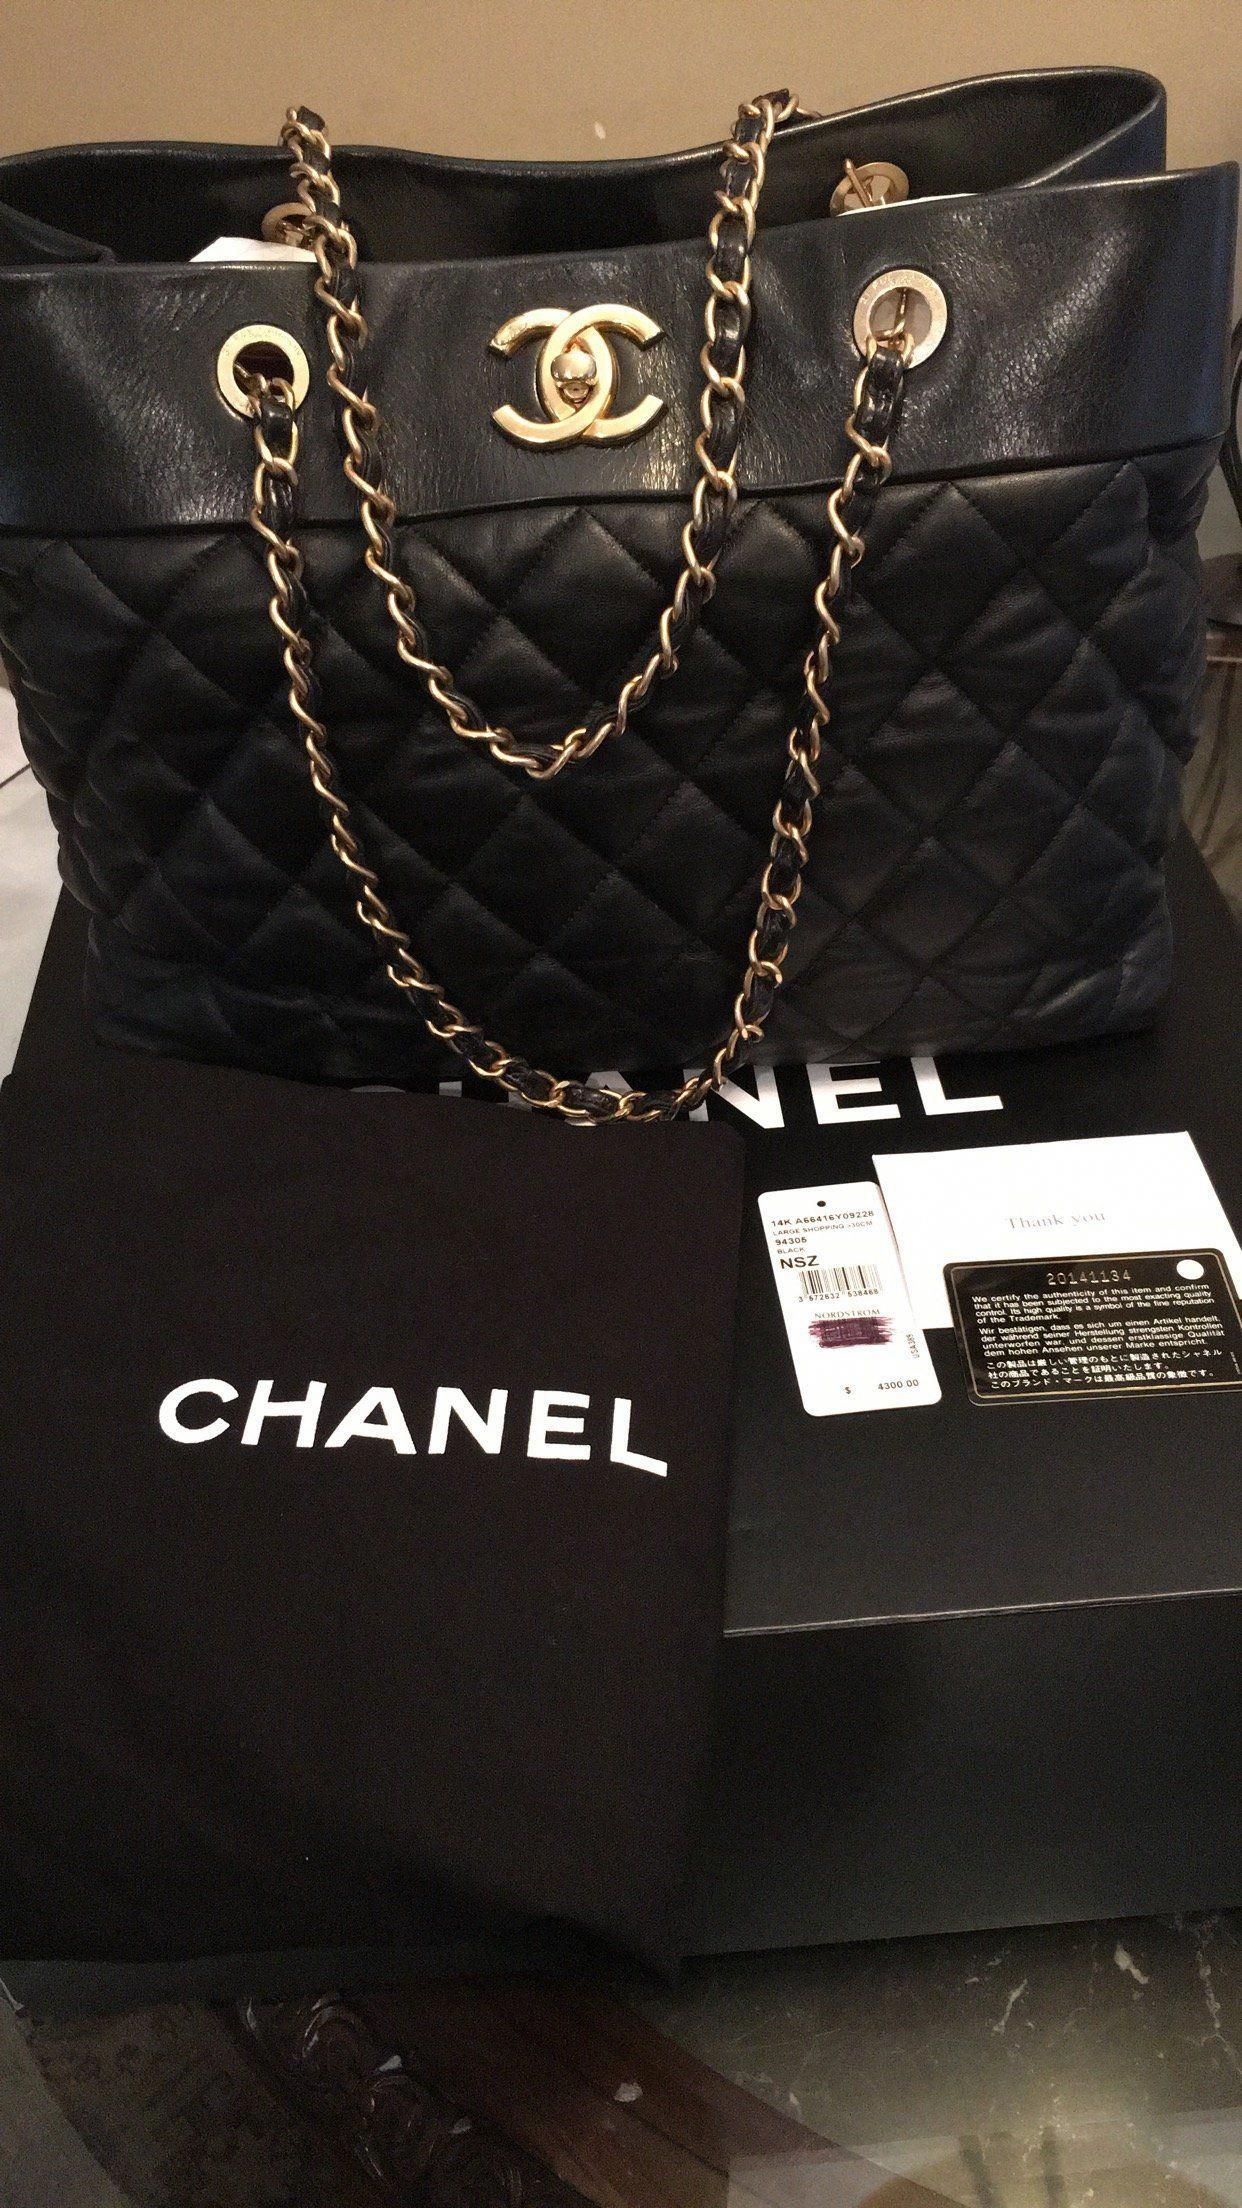 chanel quilted calf leather large shopping tote handbag black louisvuittonbags black handbag